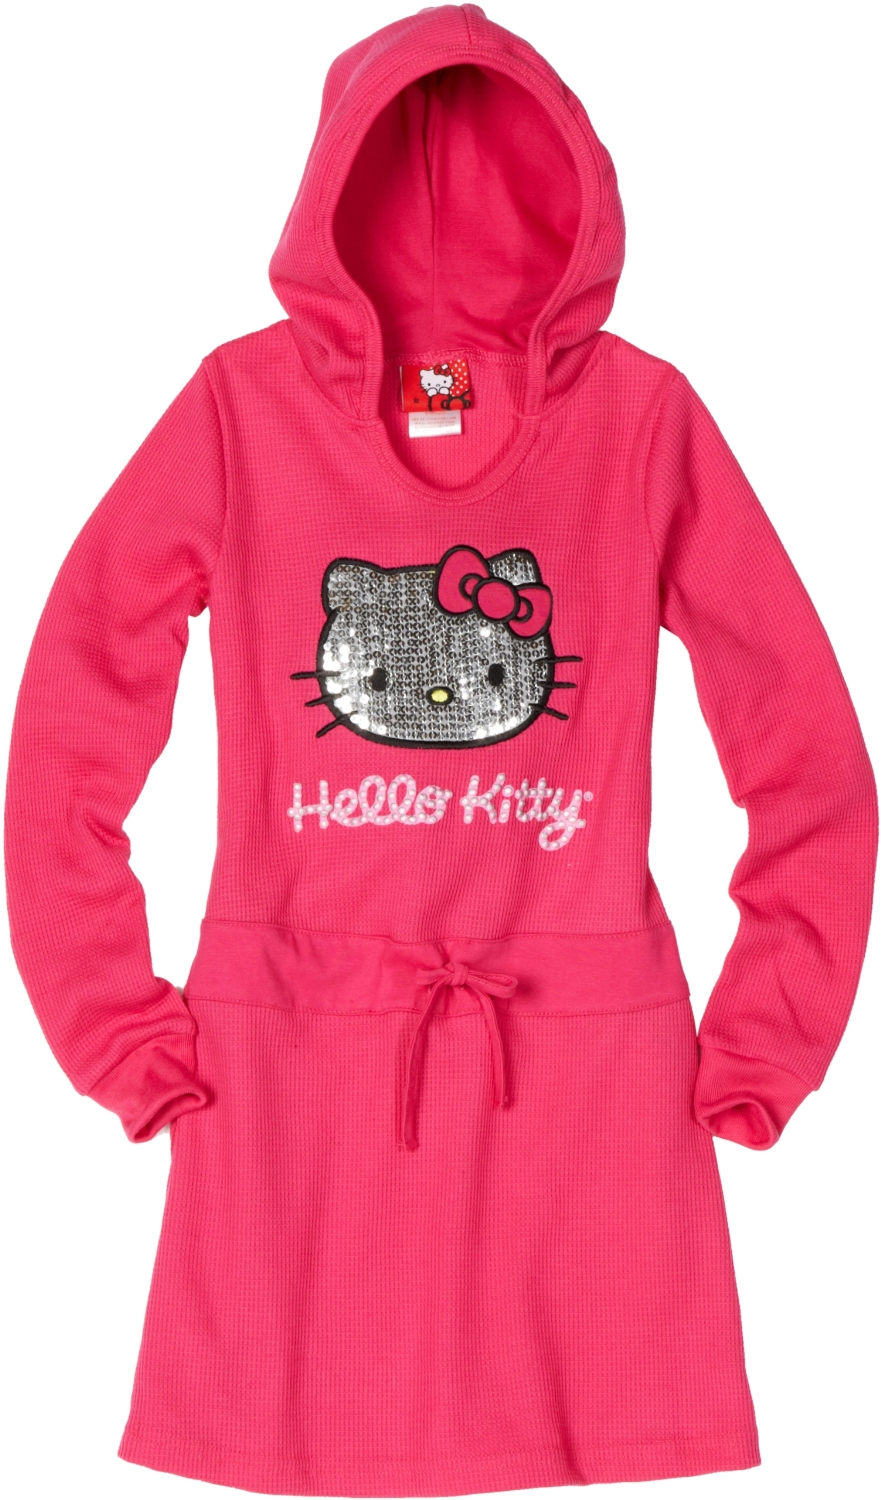 Pink Hello Kitty Girls Thermal Dress